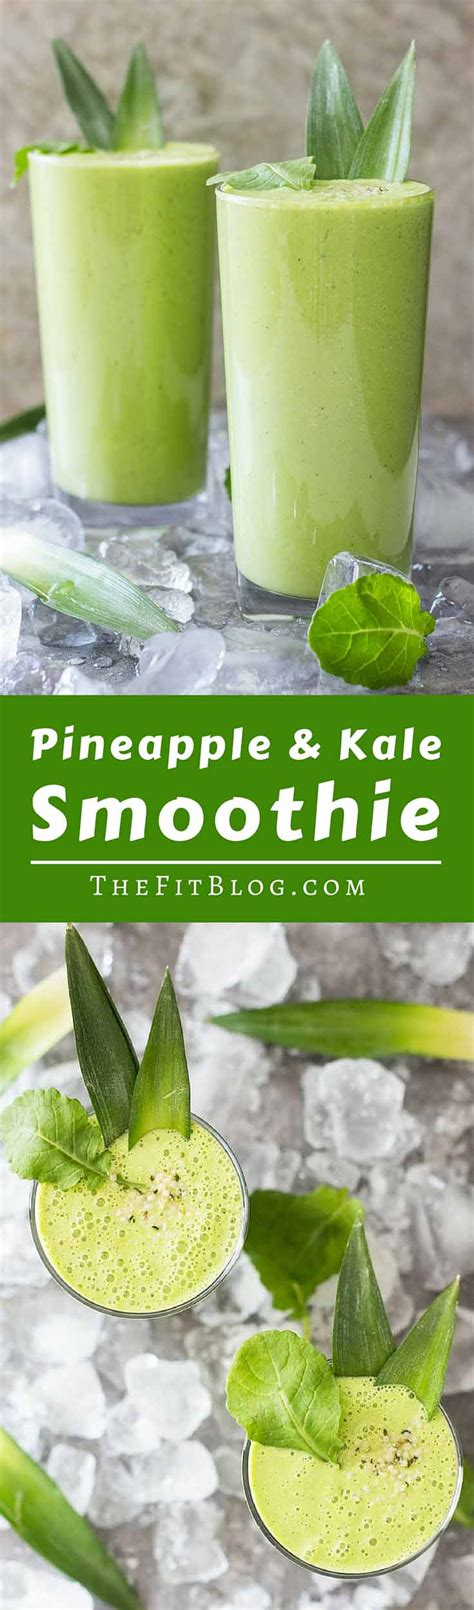 kale smoothies for diabetics 40 kale smoothies for diabetics easy gluten free low cholesterol whole foods blender recipes of weight loss transformation volume 2 books pineapple kale smoothie diabetes strong